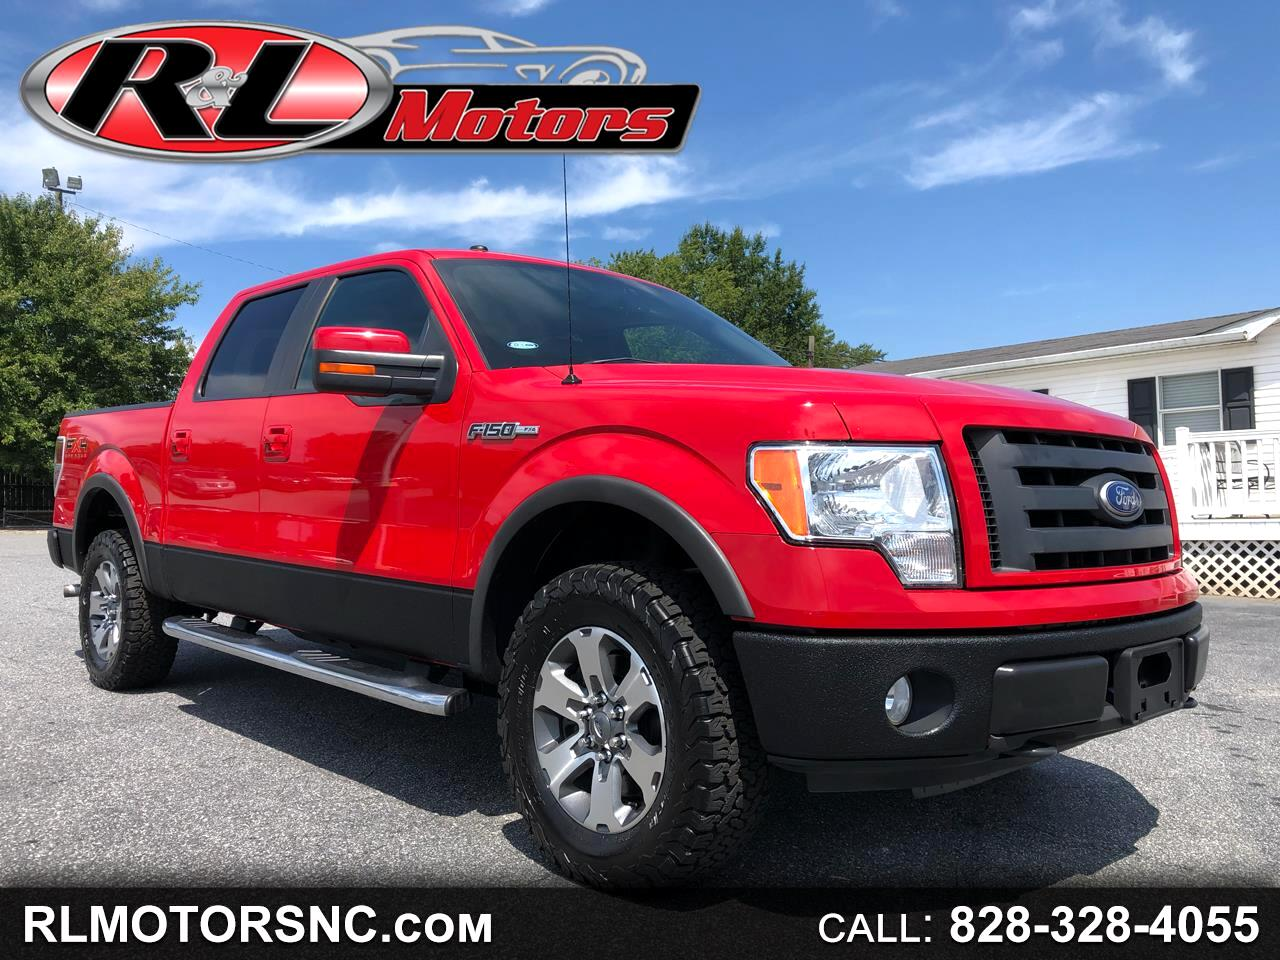 2010 Ford F-150 FX4 SuperCrew 4x4